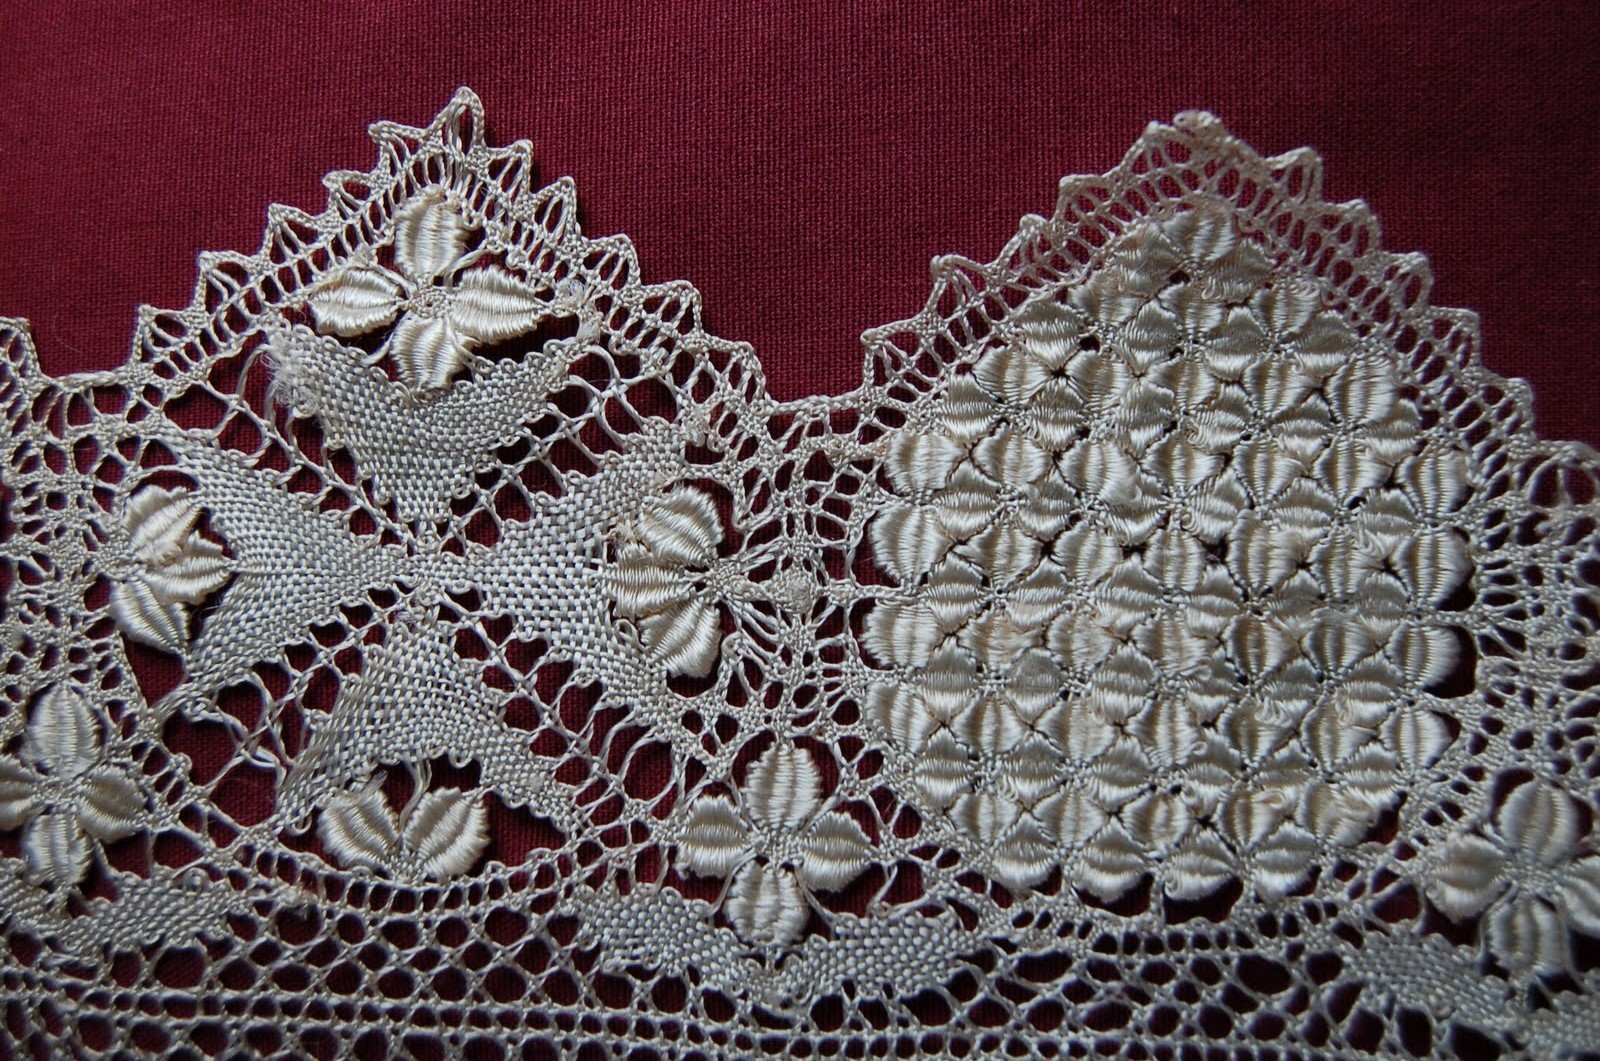 MalDia A delicate example of Malta Lace with the eight pointed Maltese Cross